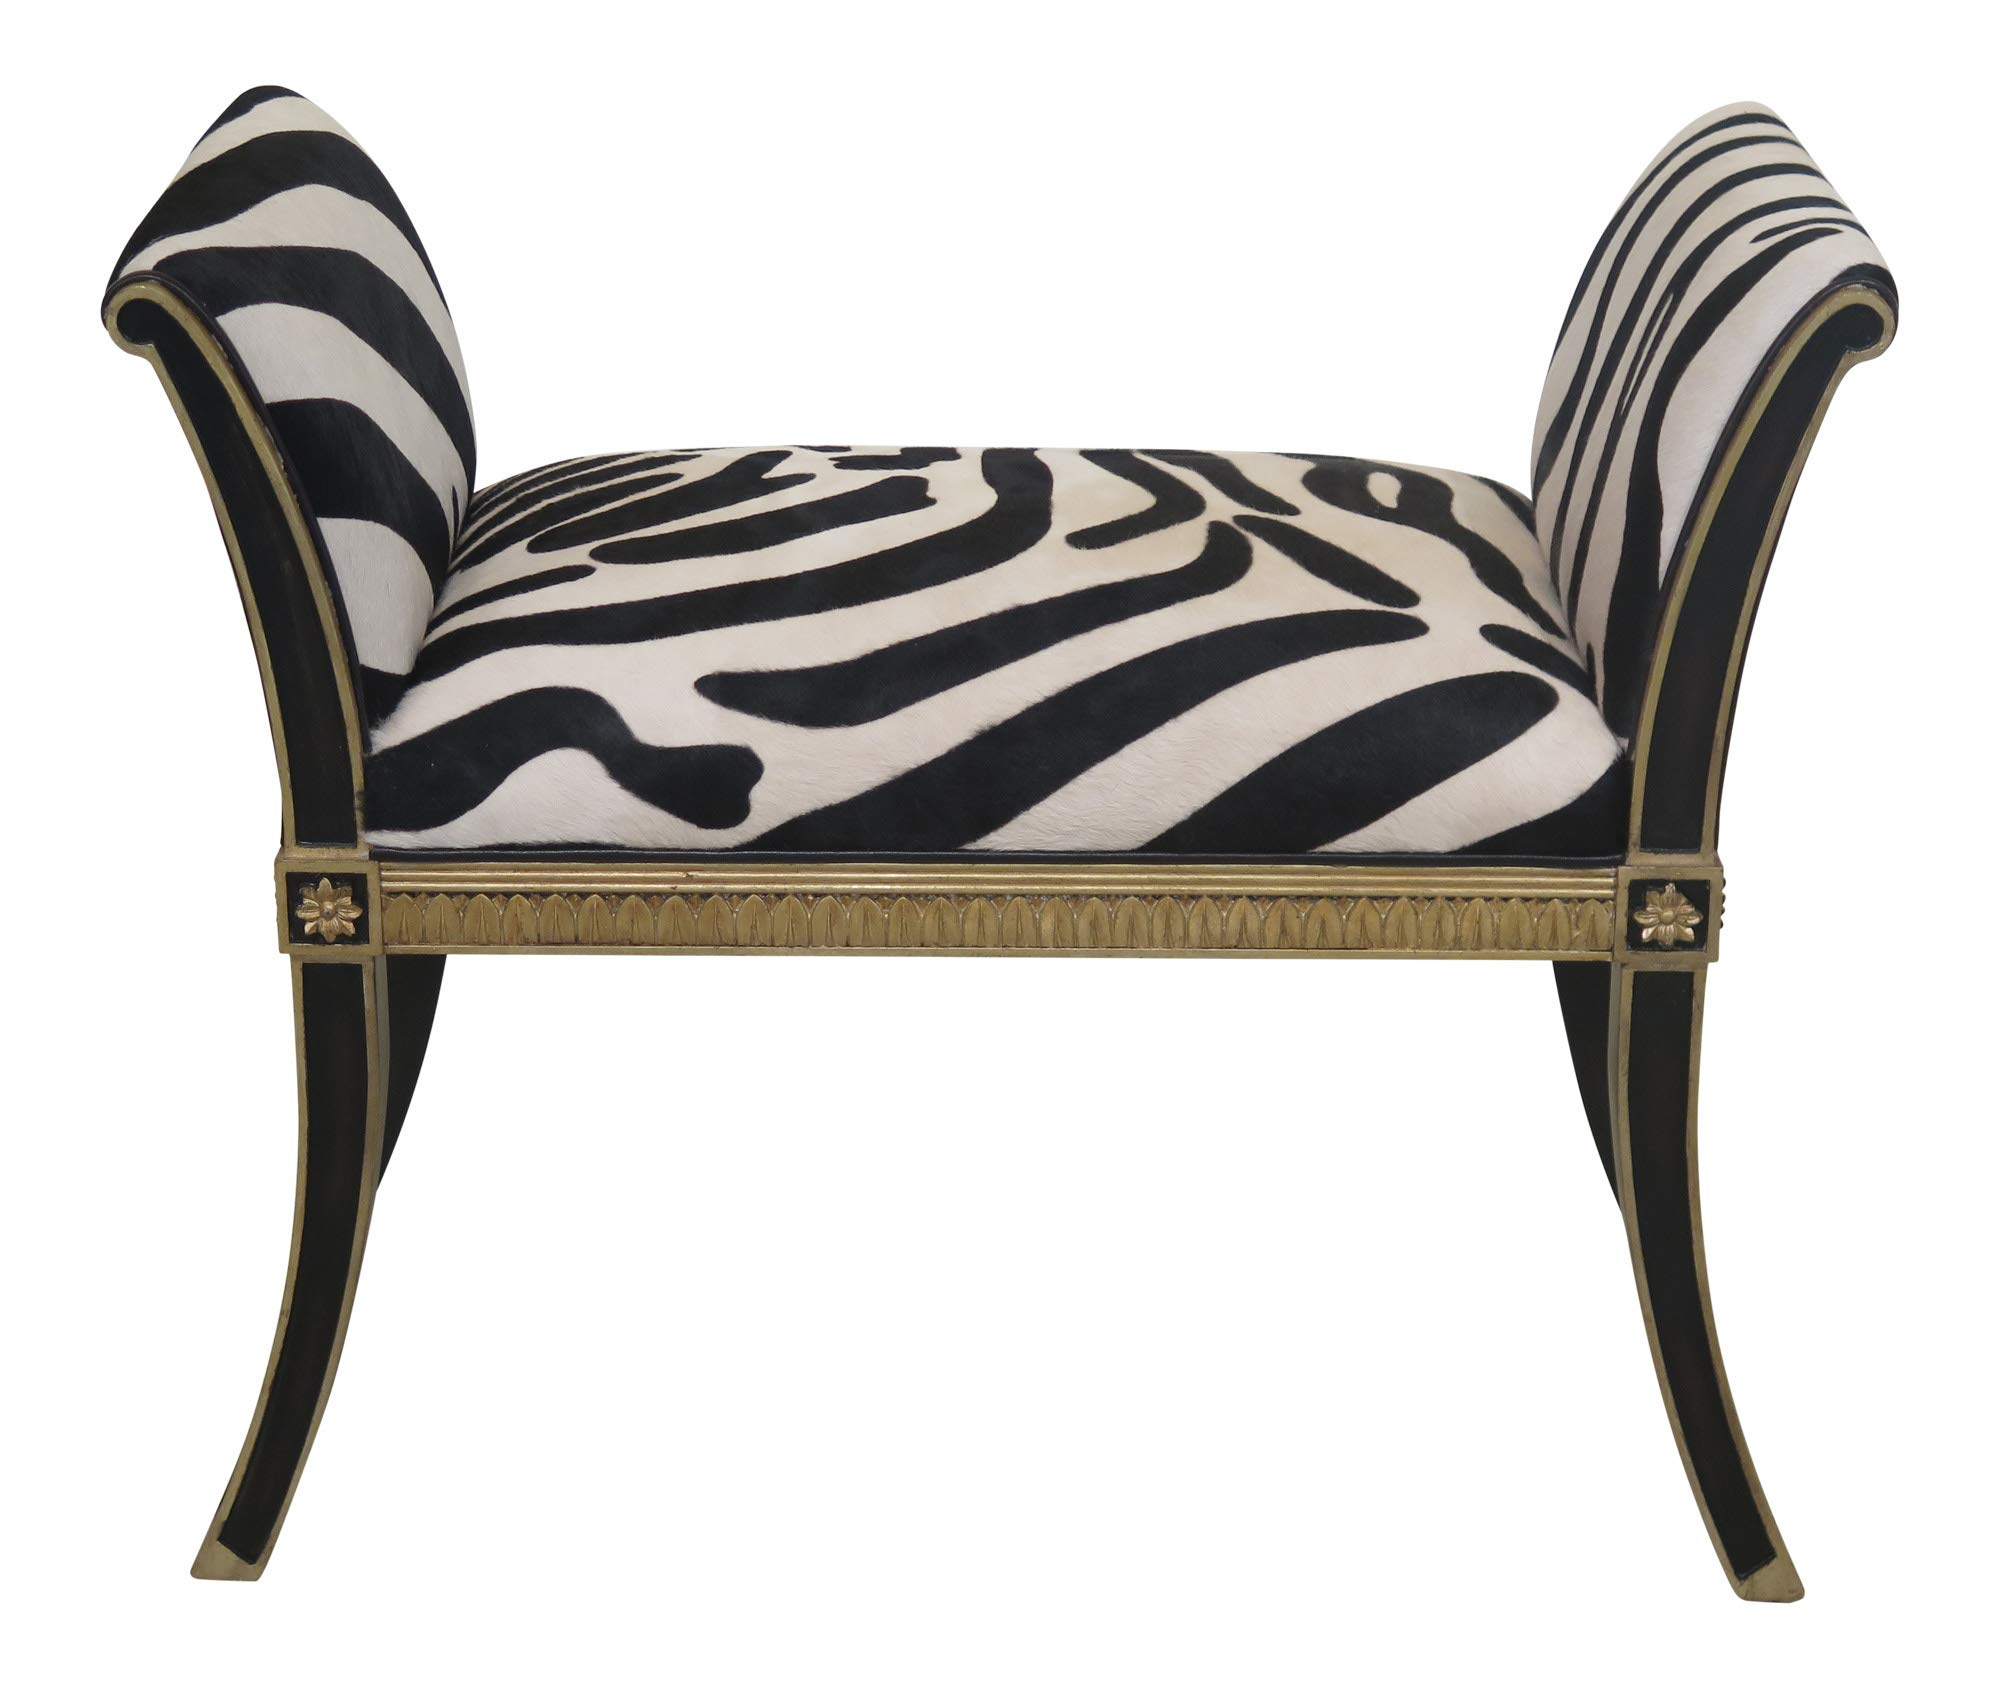 MAITLAND SMITH Model #8105-42 Zebra Hide Regency Bench ~ New by Maitland-Smith